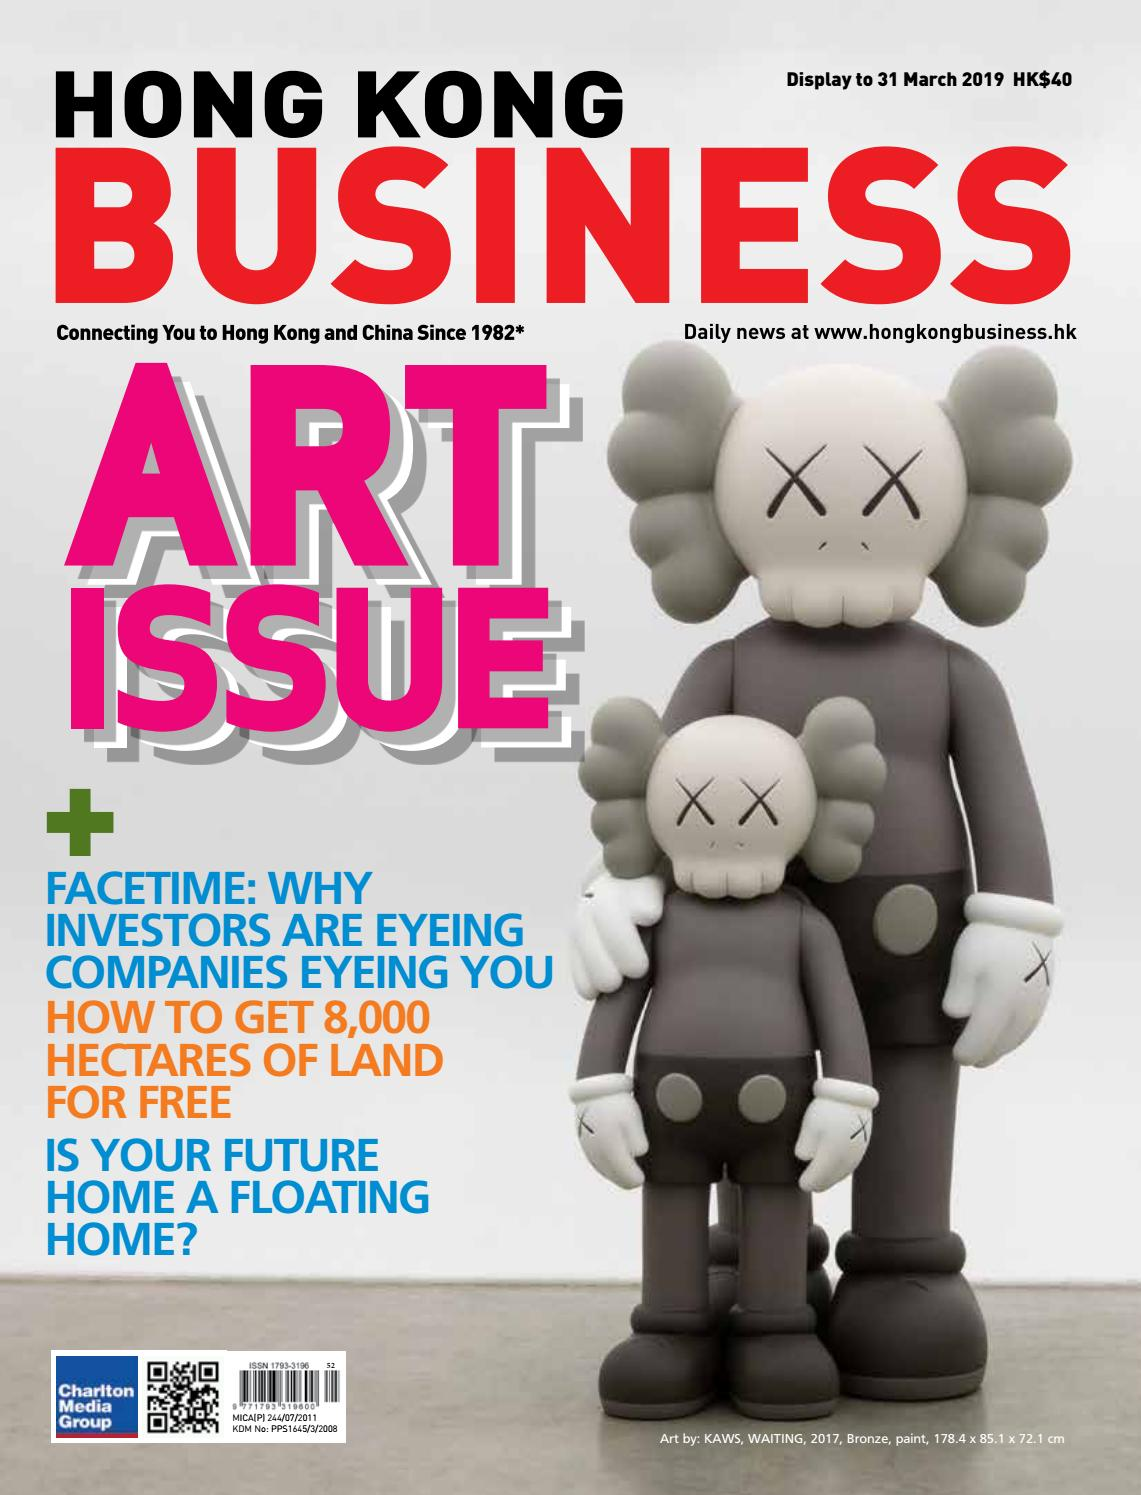 Hong Kong Business (February - March 2019) by Charlton Media Group